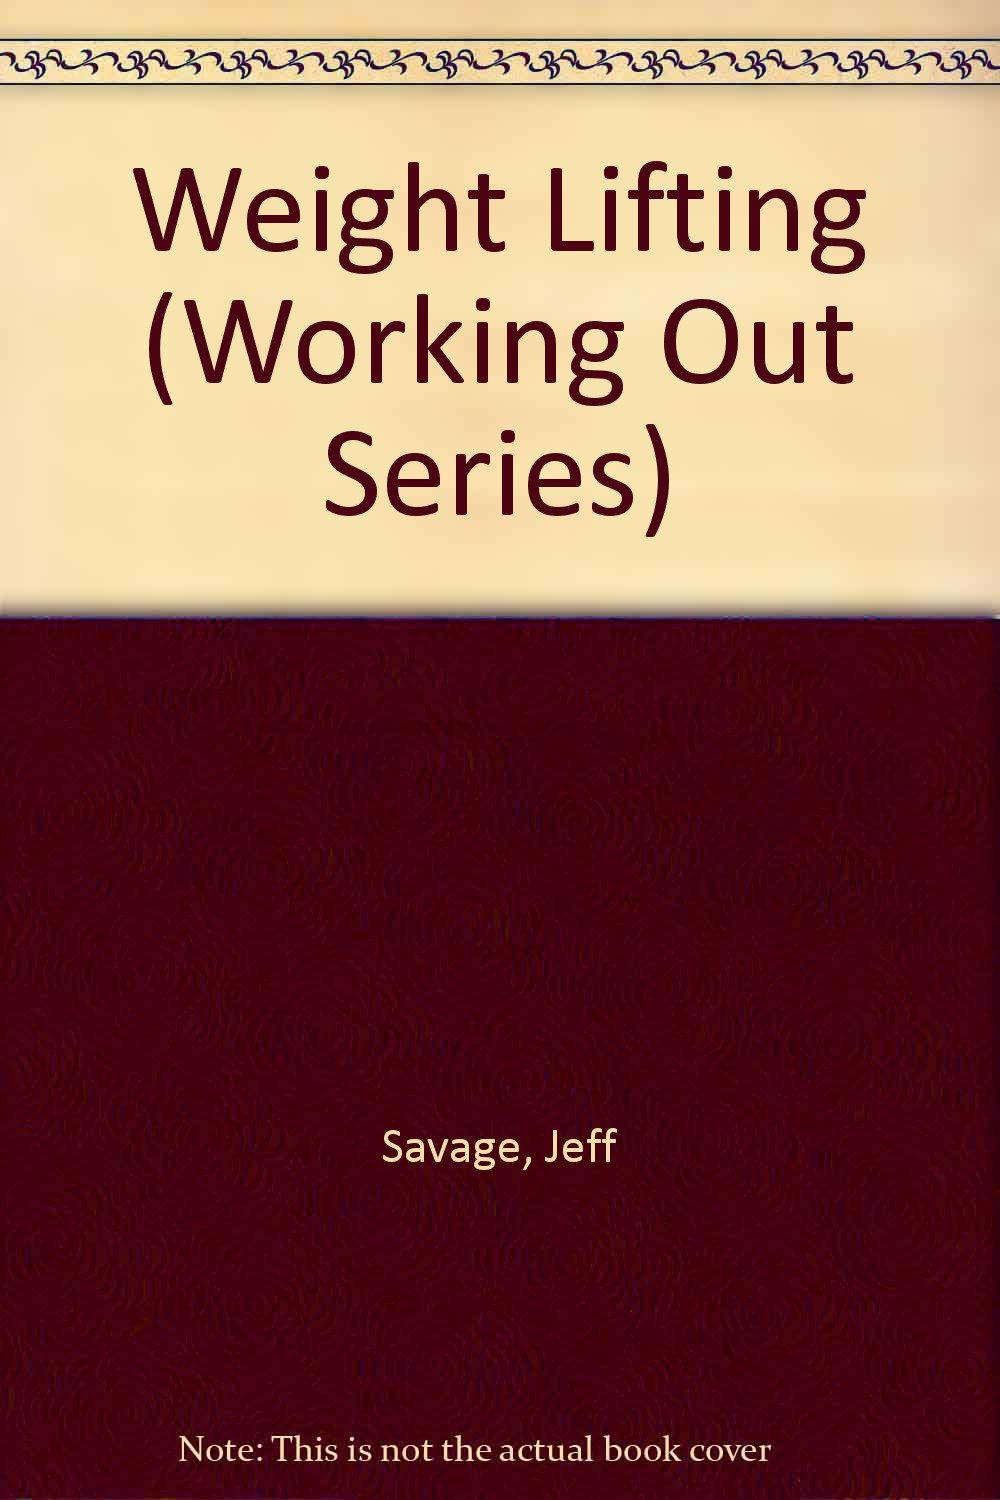 Weight Lifting (Working Out Series)